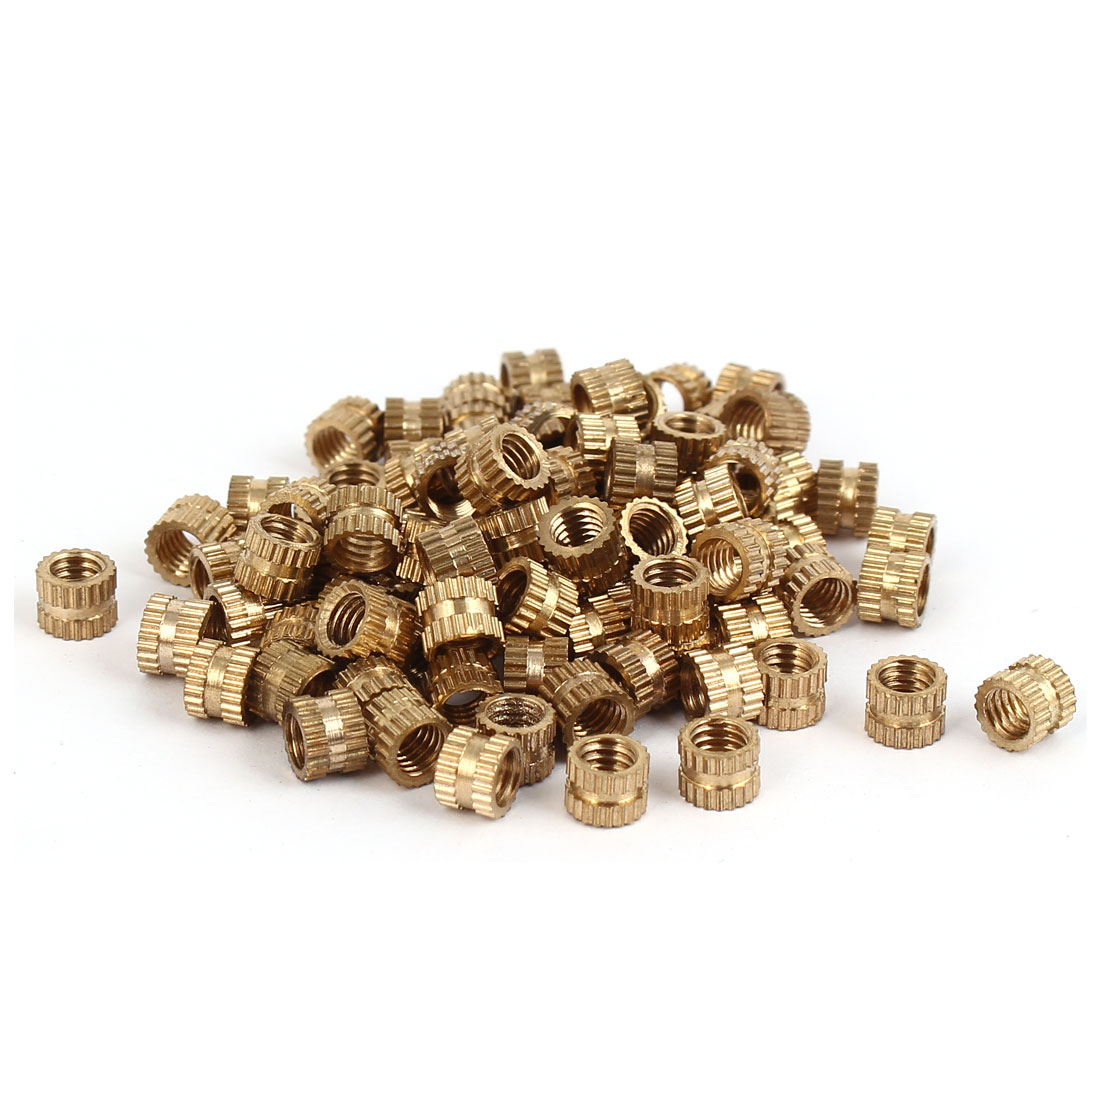 M4 x 4mm Brass Cylinder Injection Molding Knurled Threaded Embedment Nuts 100PCS